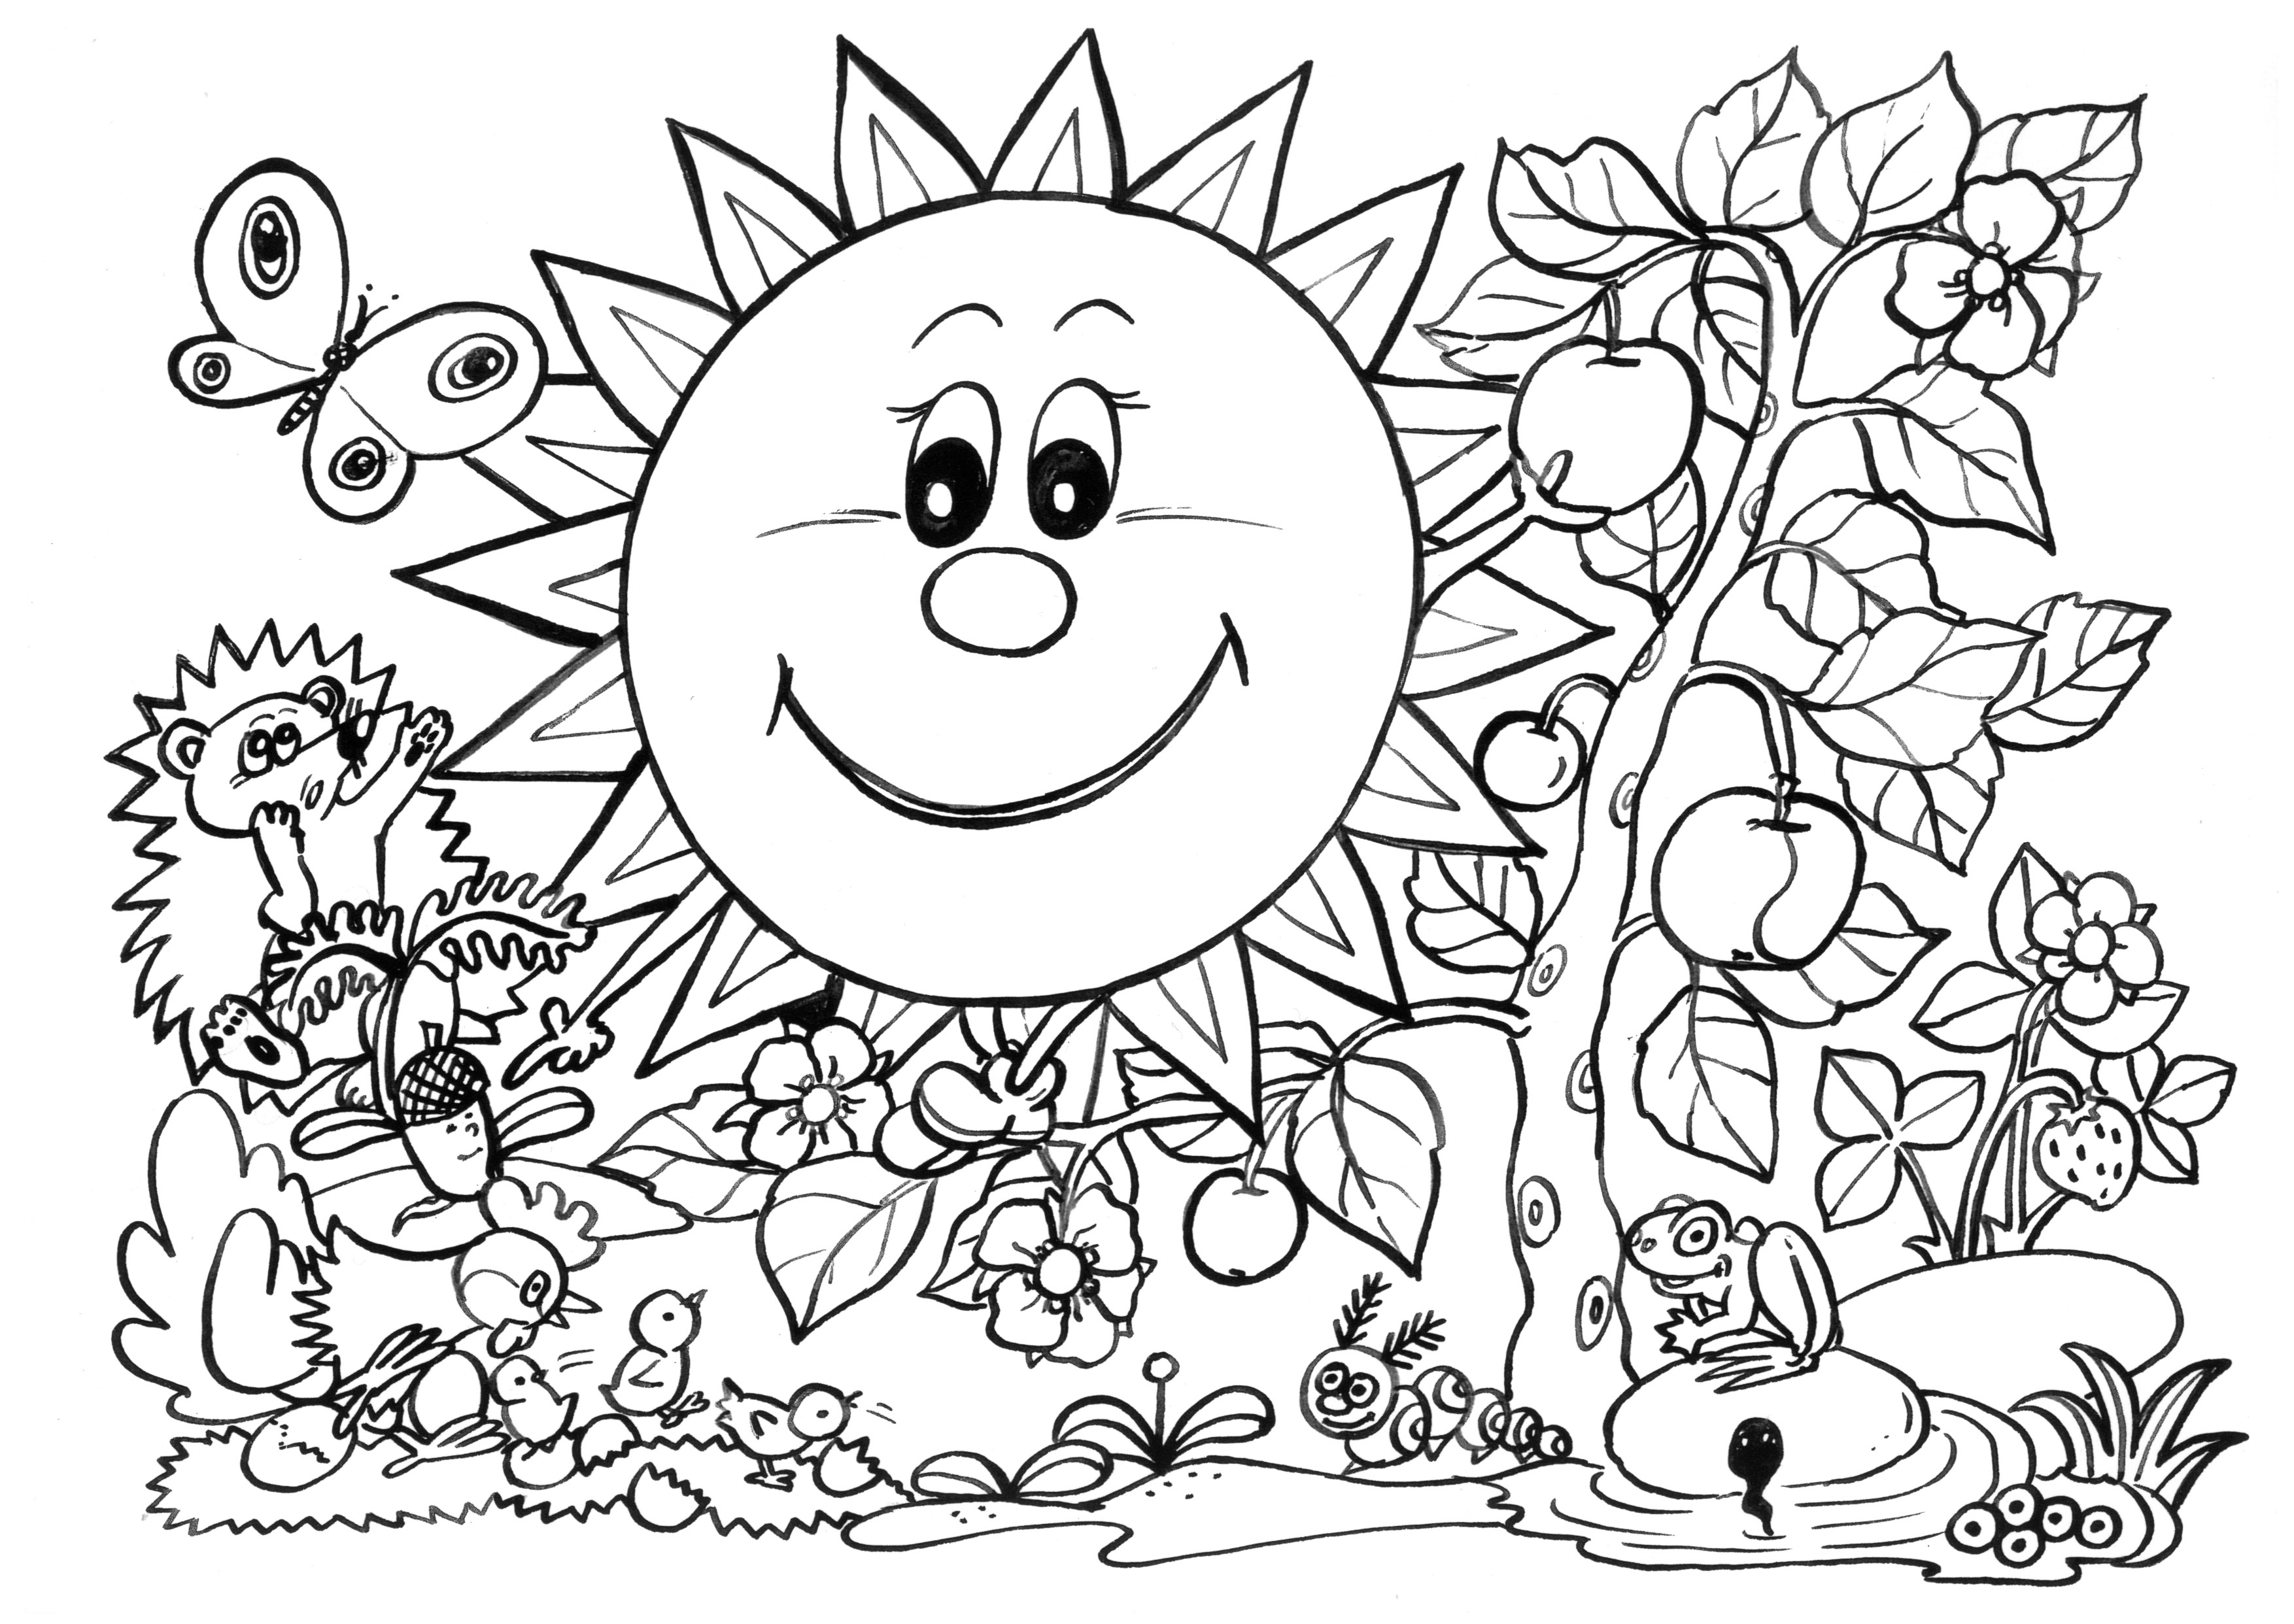 pages sunny garden free printable pages for